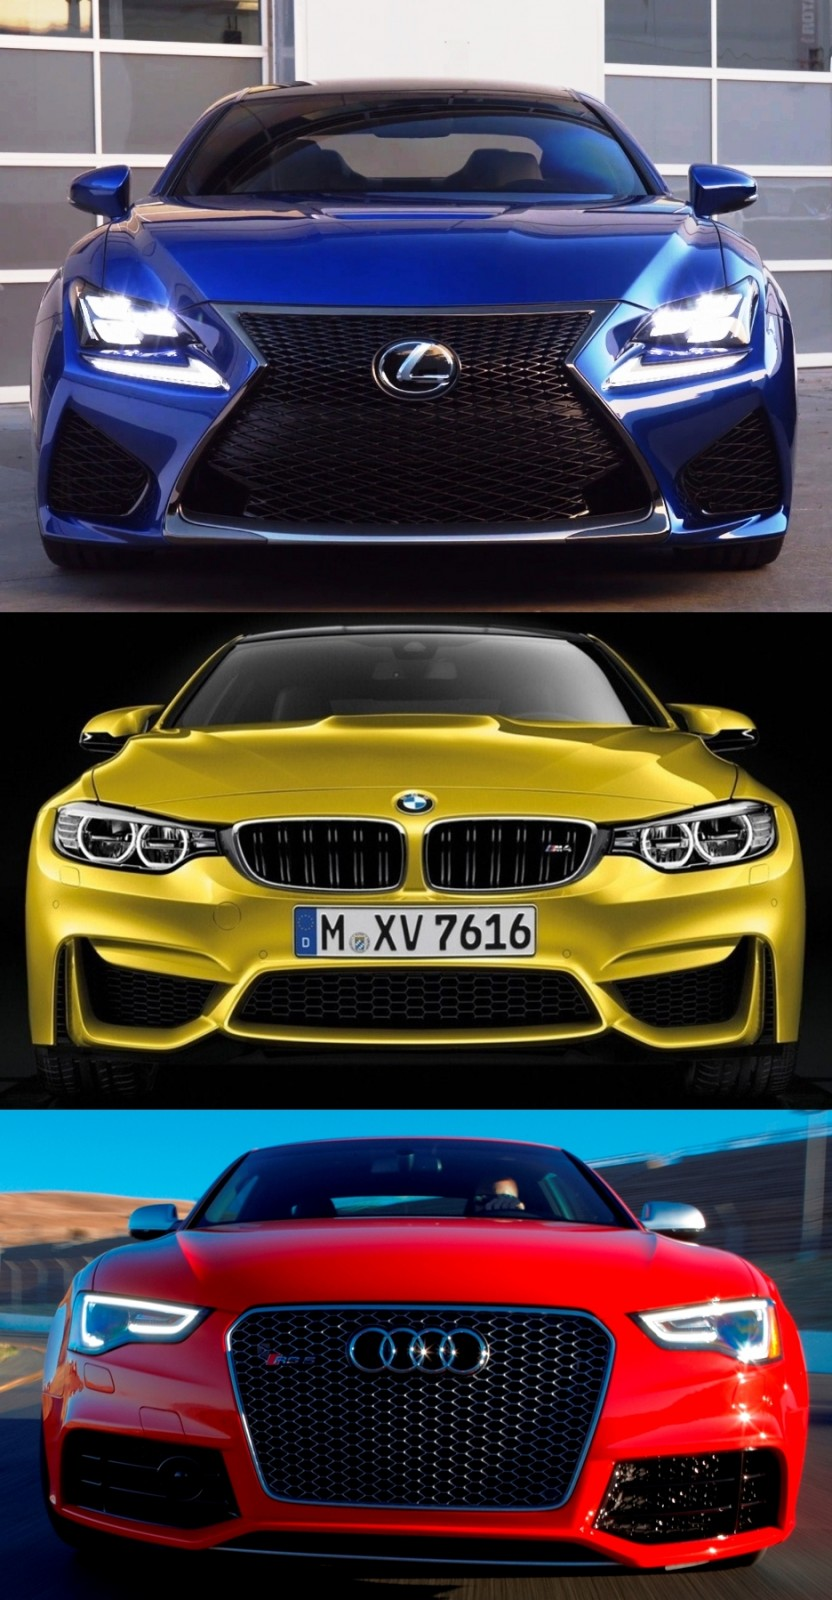 2015 bmw m3 and m4 meet the legacy in 52 new photos with e30 sport evolution e36 e46 and e90. Black Bedroom Furniture Sets. Home Design Ideas